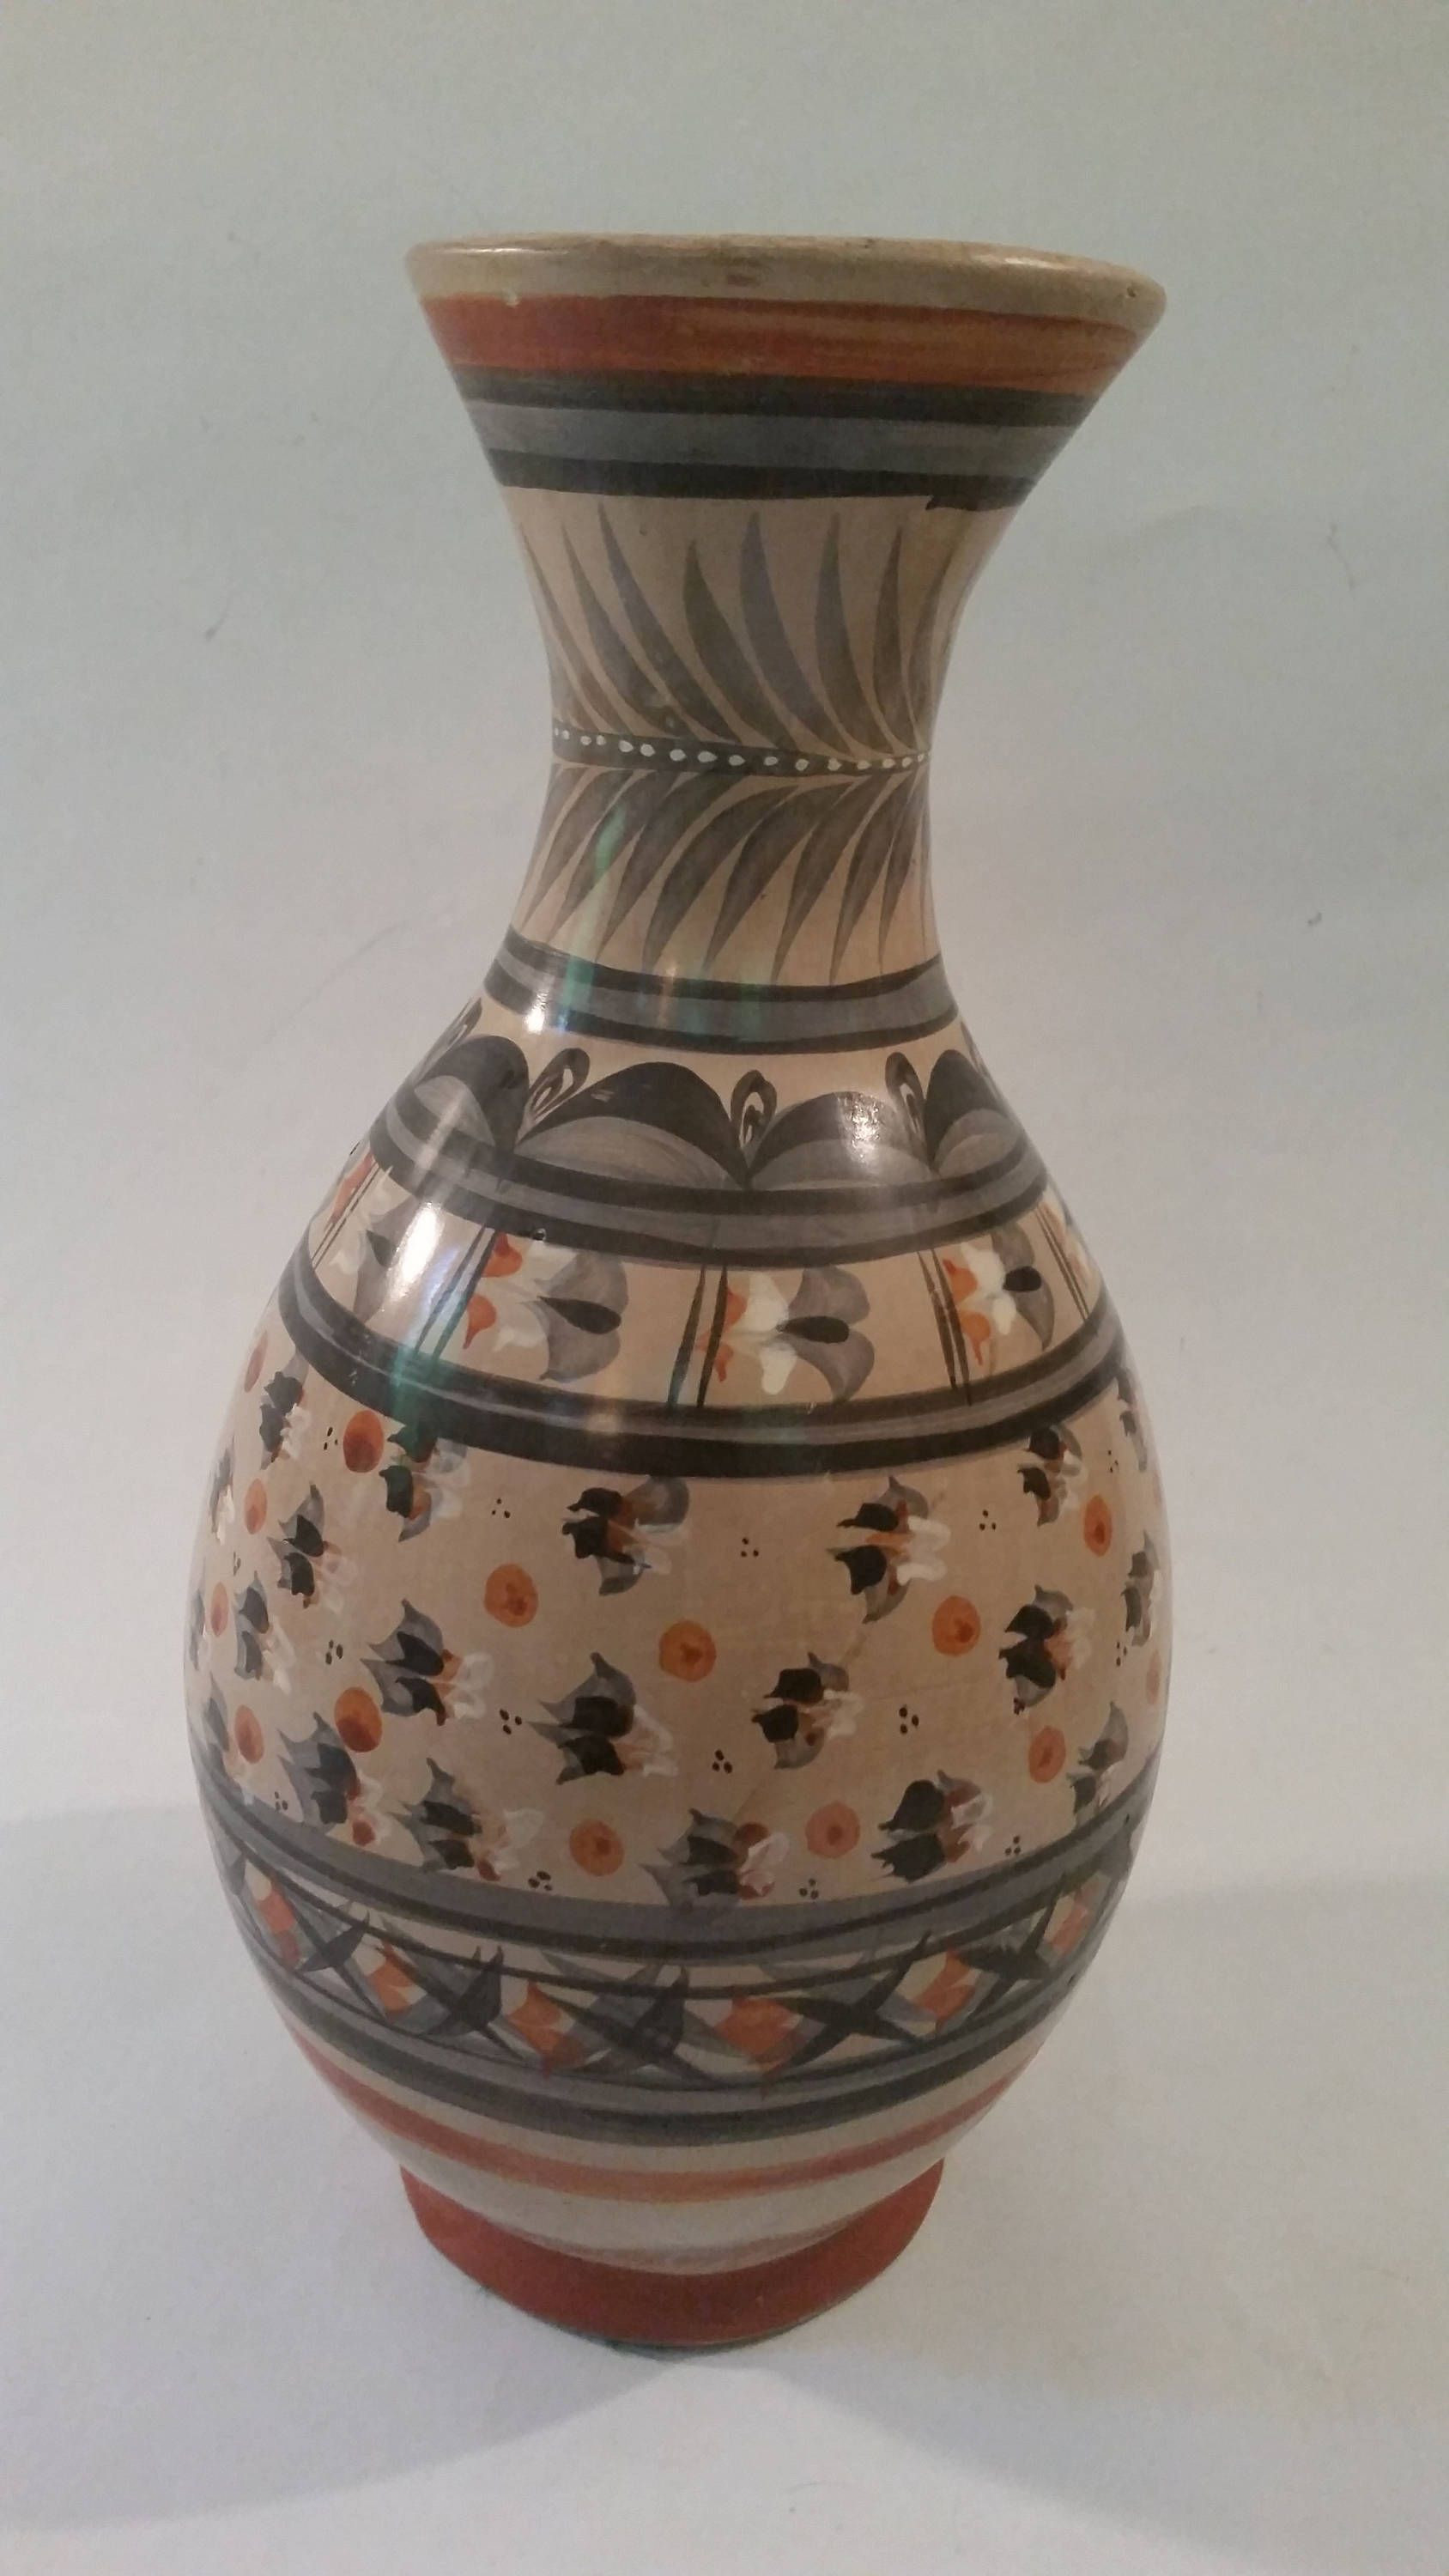 decorative ceramic vases large of vintage mexican ceramic vase large hand painted clay vessel tonala regarding vintage mexican ceramic vase large hand painted clay vessel tonala pottery mexi